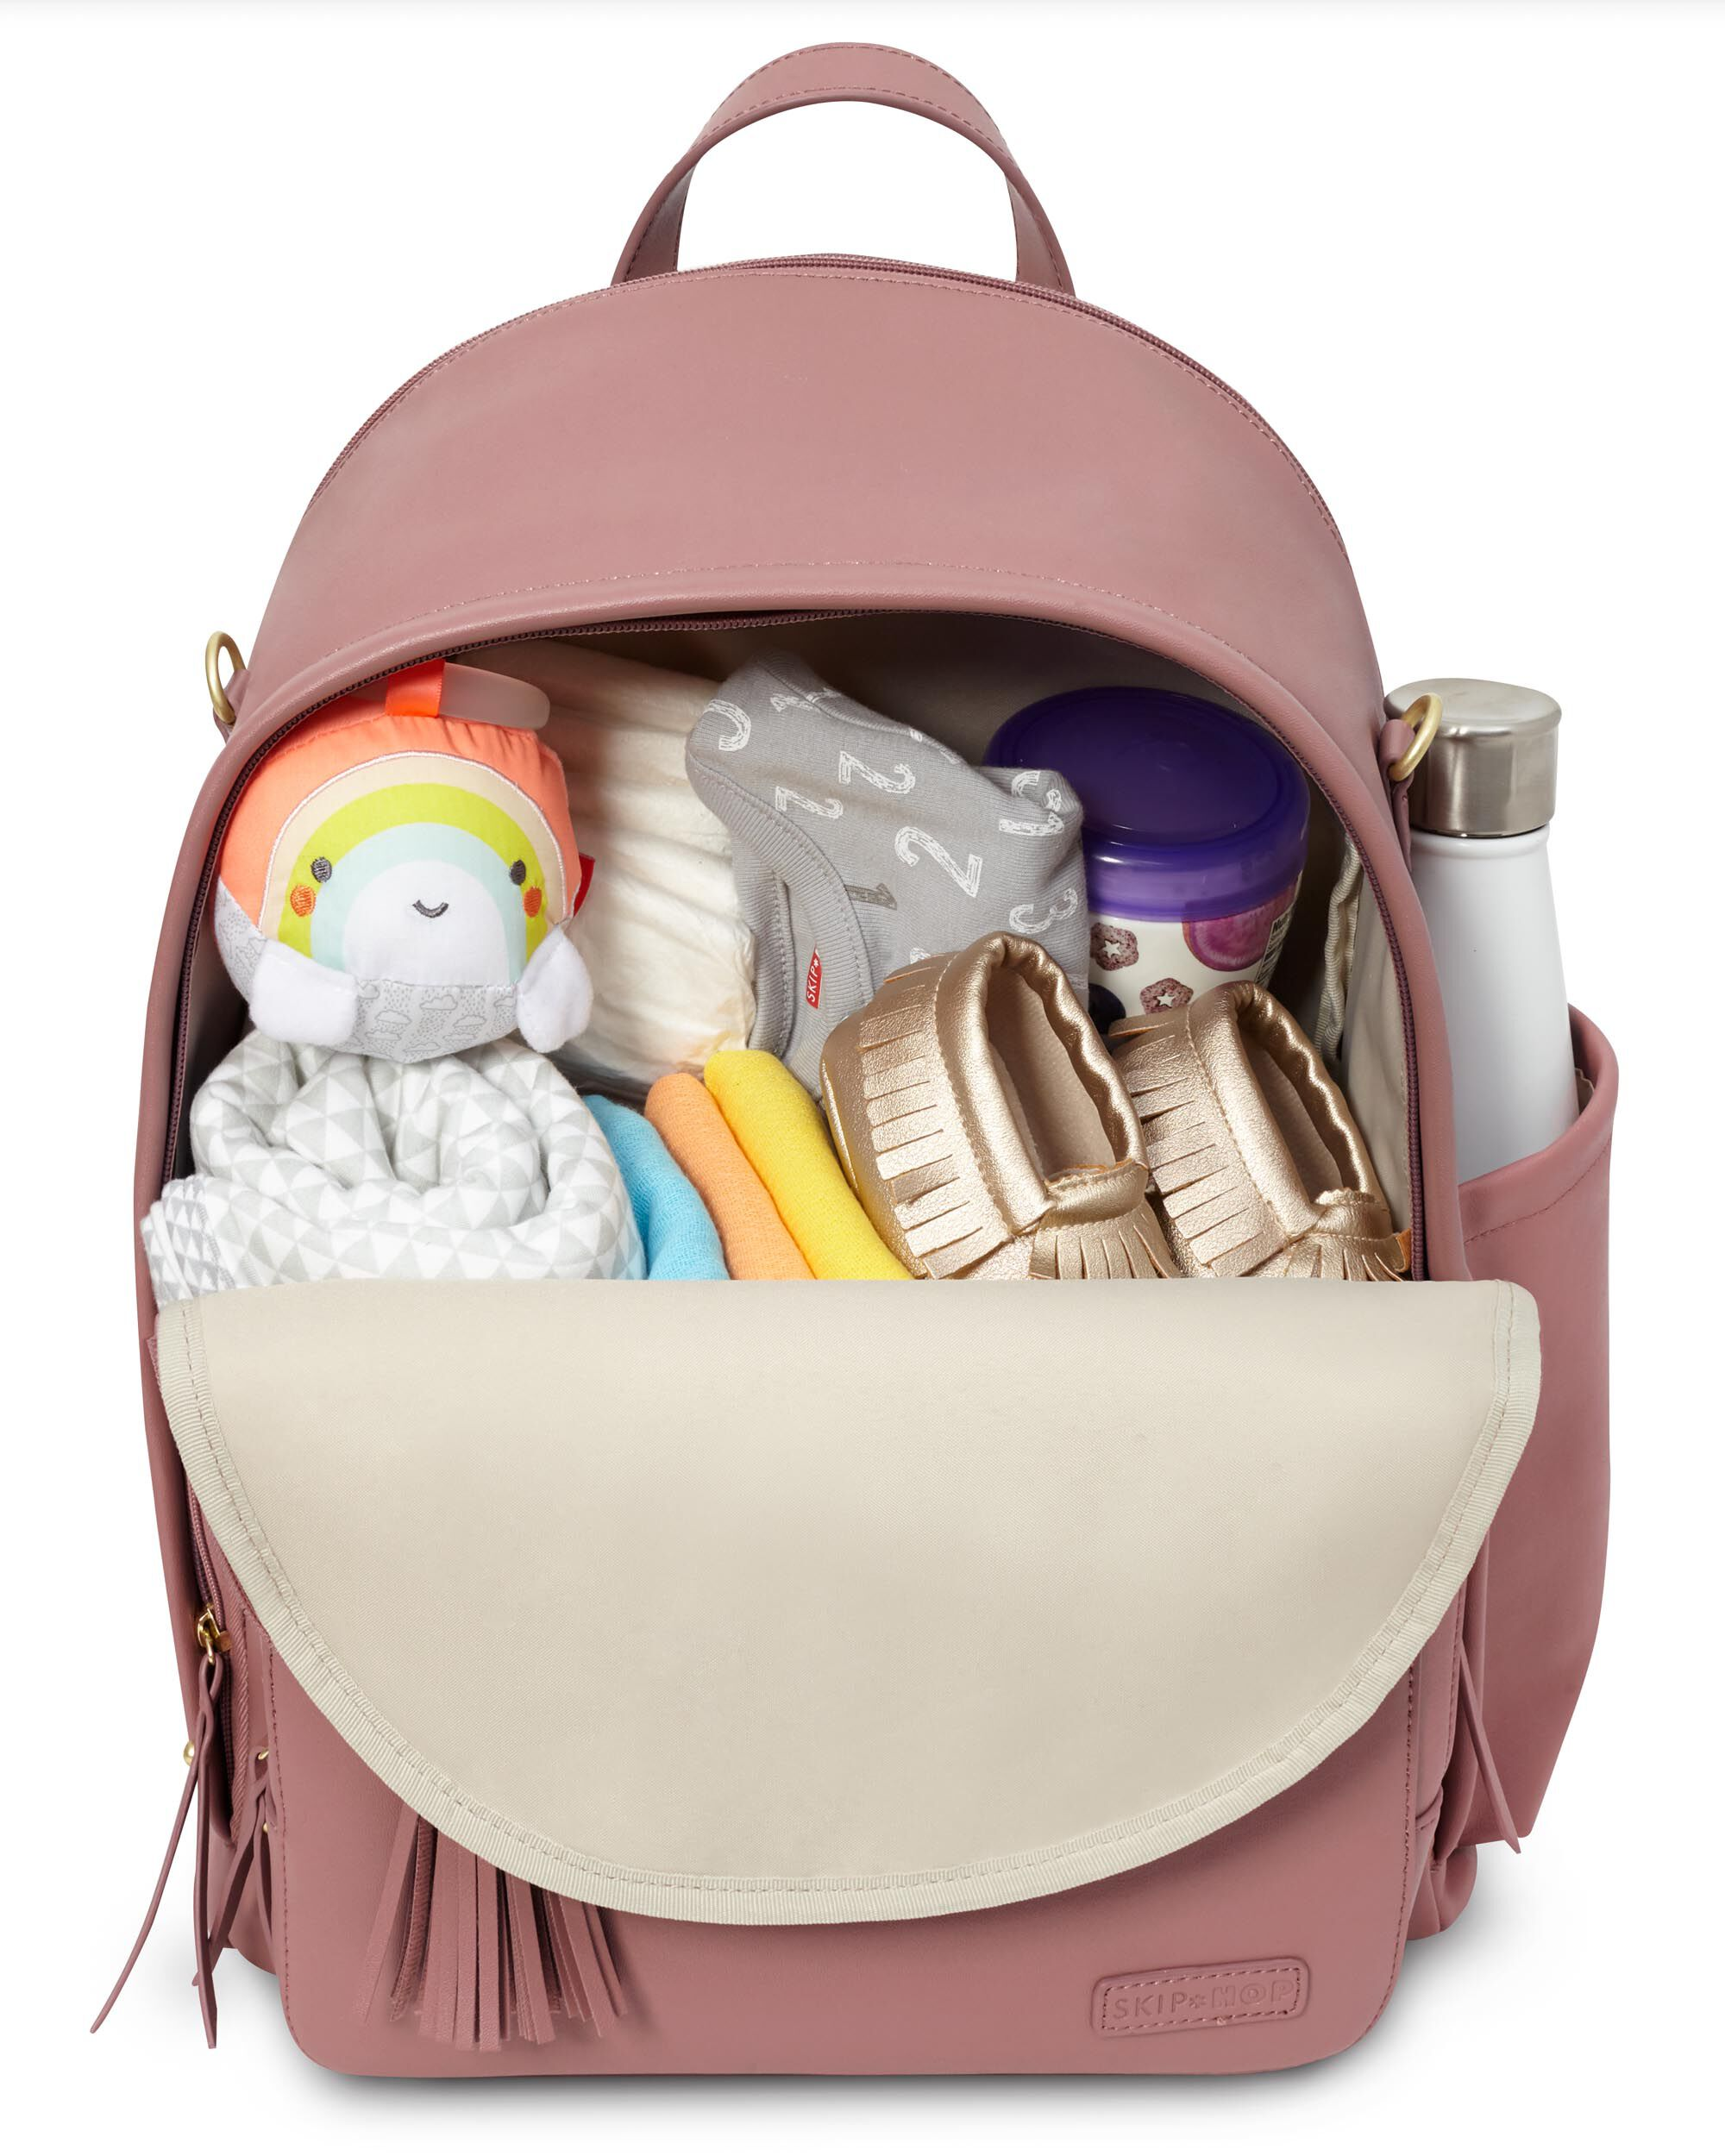 79d231f717 ... Greenwich Simply Chic Backpack ...